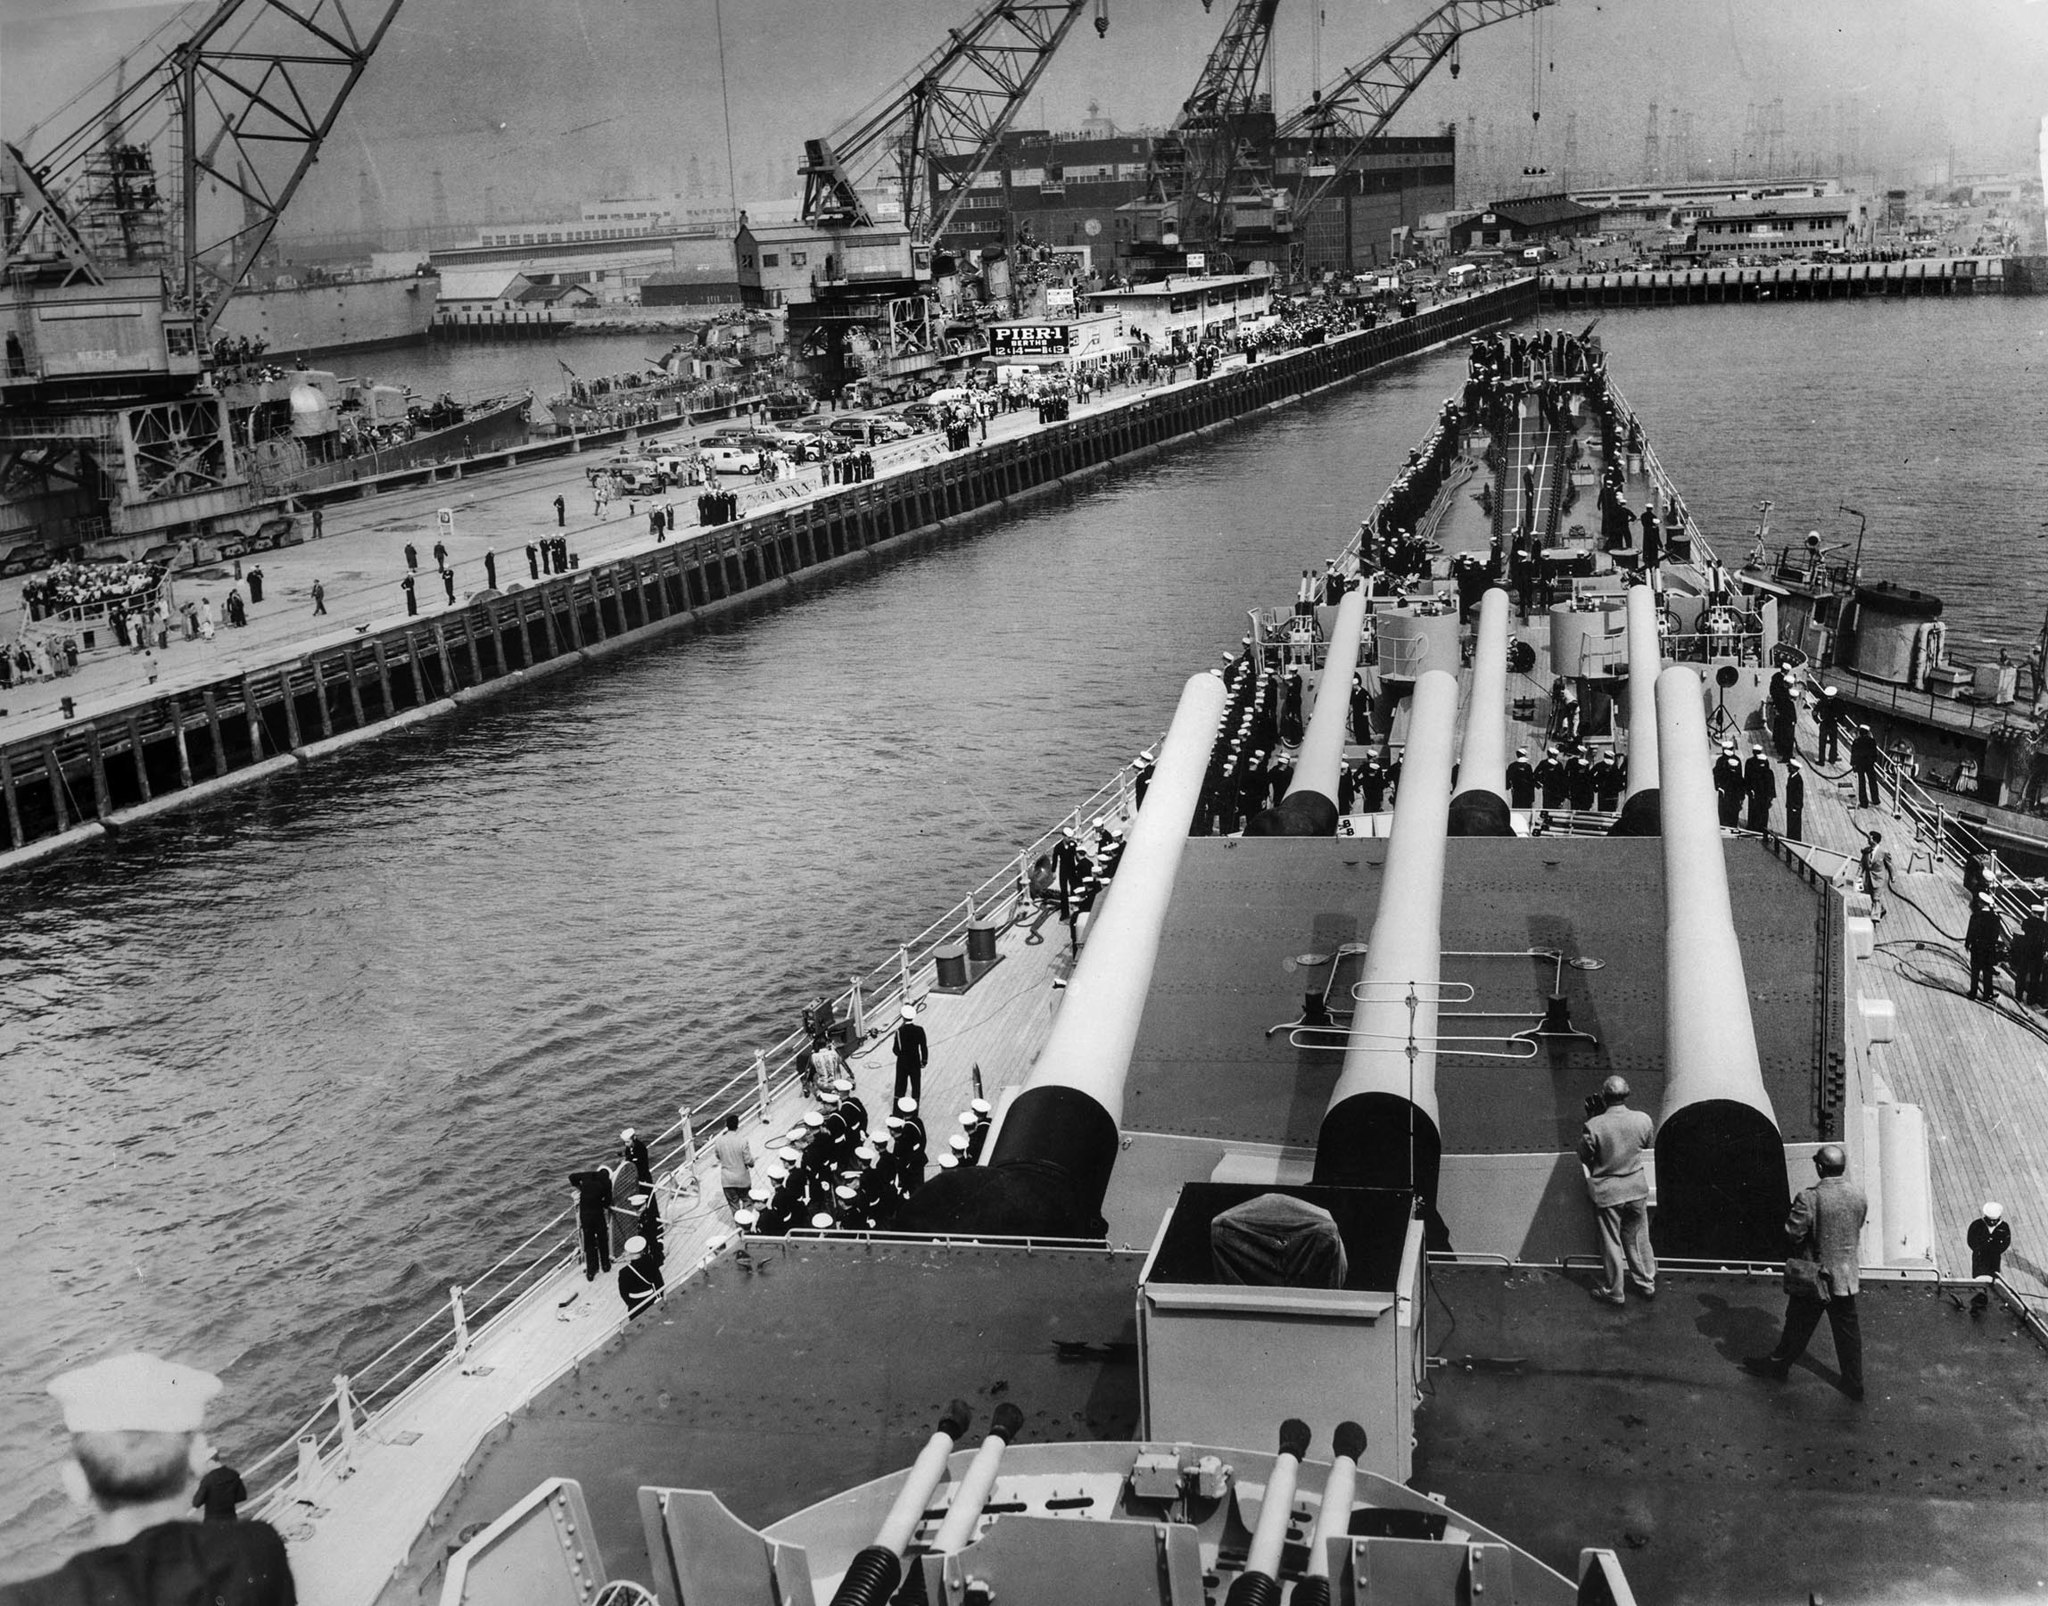 April 12, 1951: View from the USS Missouri as the battleship returns to Terminal Island after deploy